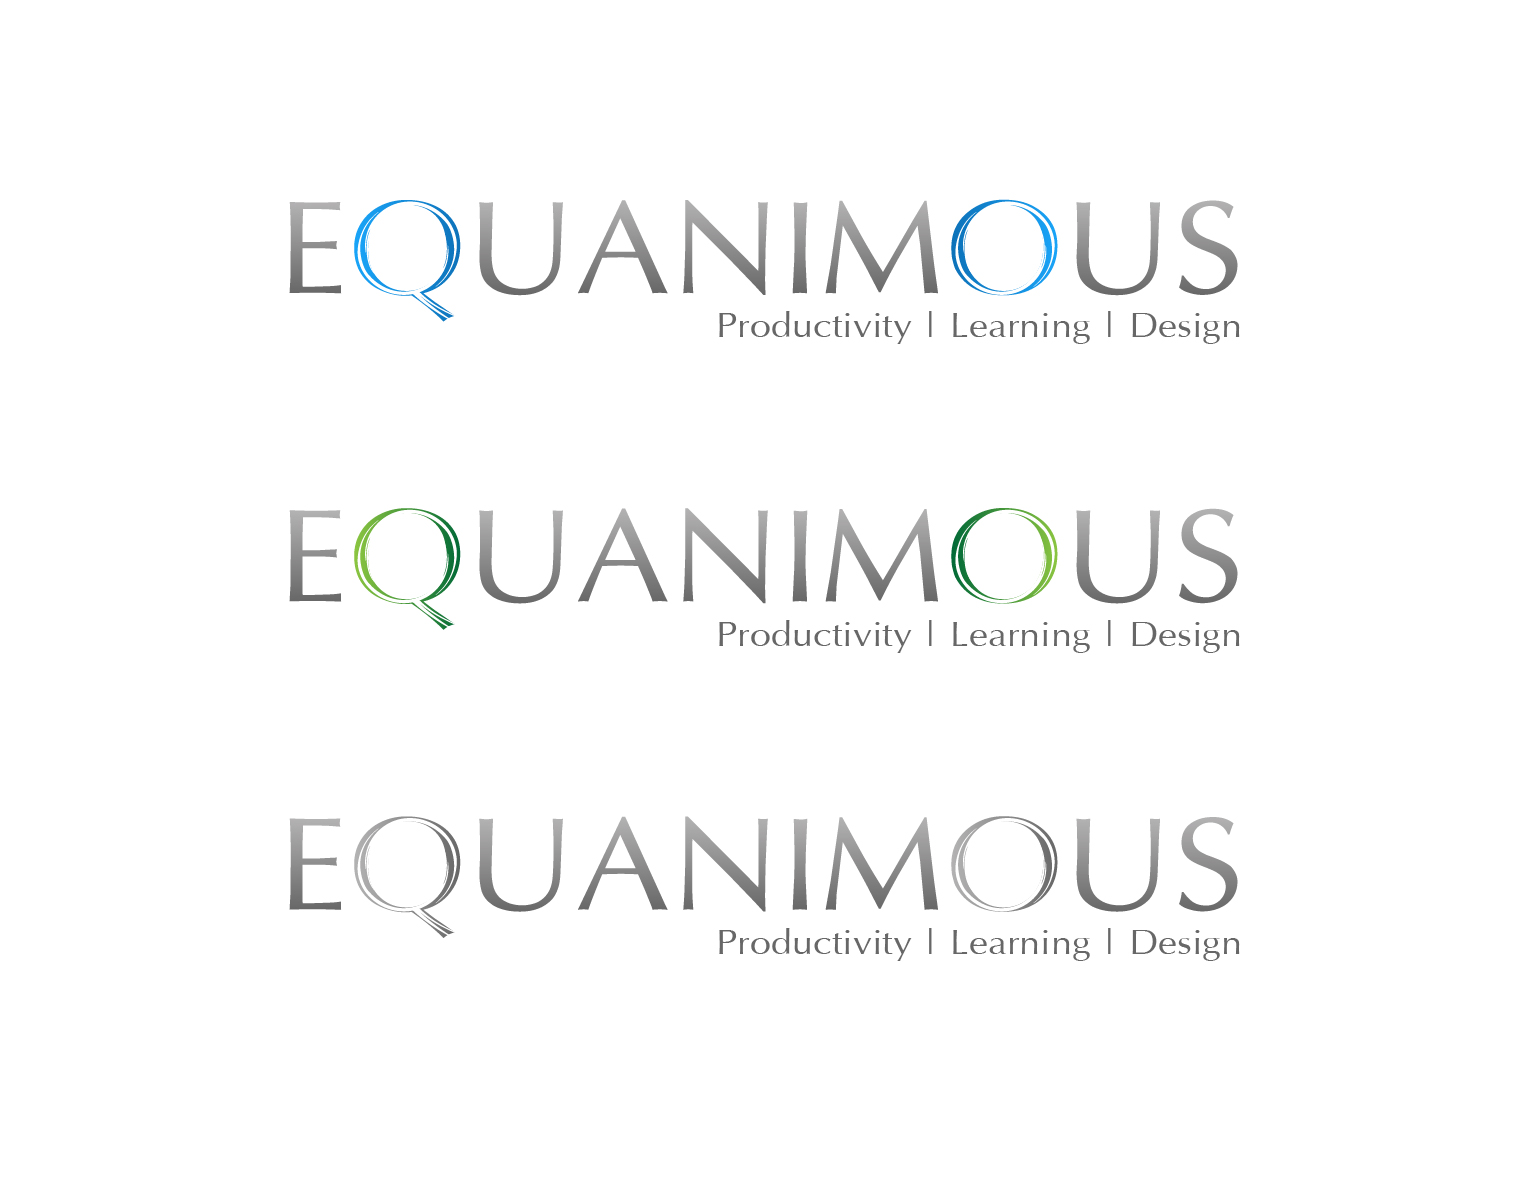 Logo Design by 3draw - Entry No. 530 in the Logo Design Contest Logo Design : EQUANIMOUS : Productivity | Learning | Design.